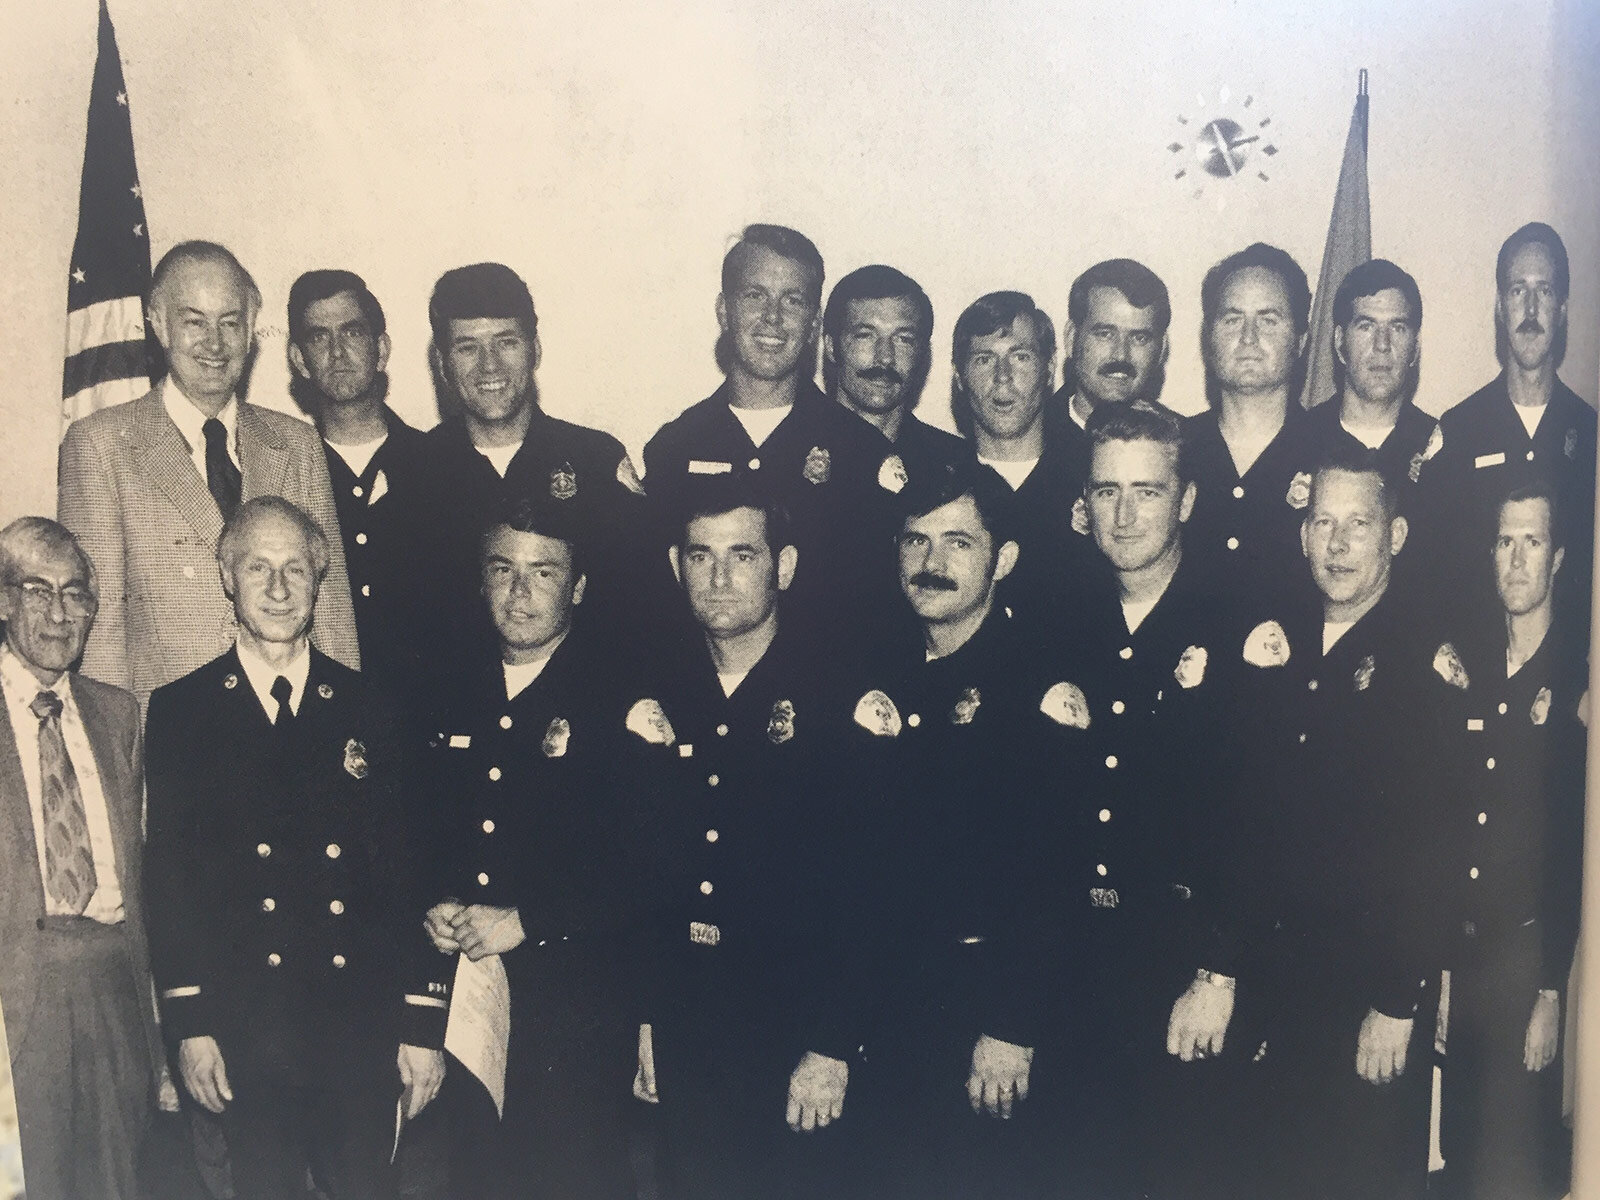 "The first Paramedic class is pictured here. From left to right: (first row) Dr. Irv Unger from Saint Mary's Hospital , Chief Rizzo, John Acosta, Art Santavicca, Gary Olson, Pat Highfill, Dennis Weller, and John Christensen; (second row) City Manager Bob Creighton, Bill ""Mad Dog"" Kelly, Walt Gupton, Don Aselin, Bob Shue, Craig ""Bird"" Vestermark, Bob Parkins, Gary Robertson, Dennis Wynn, and Carl Scheu."